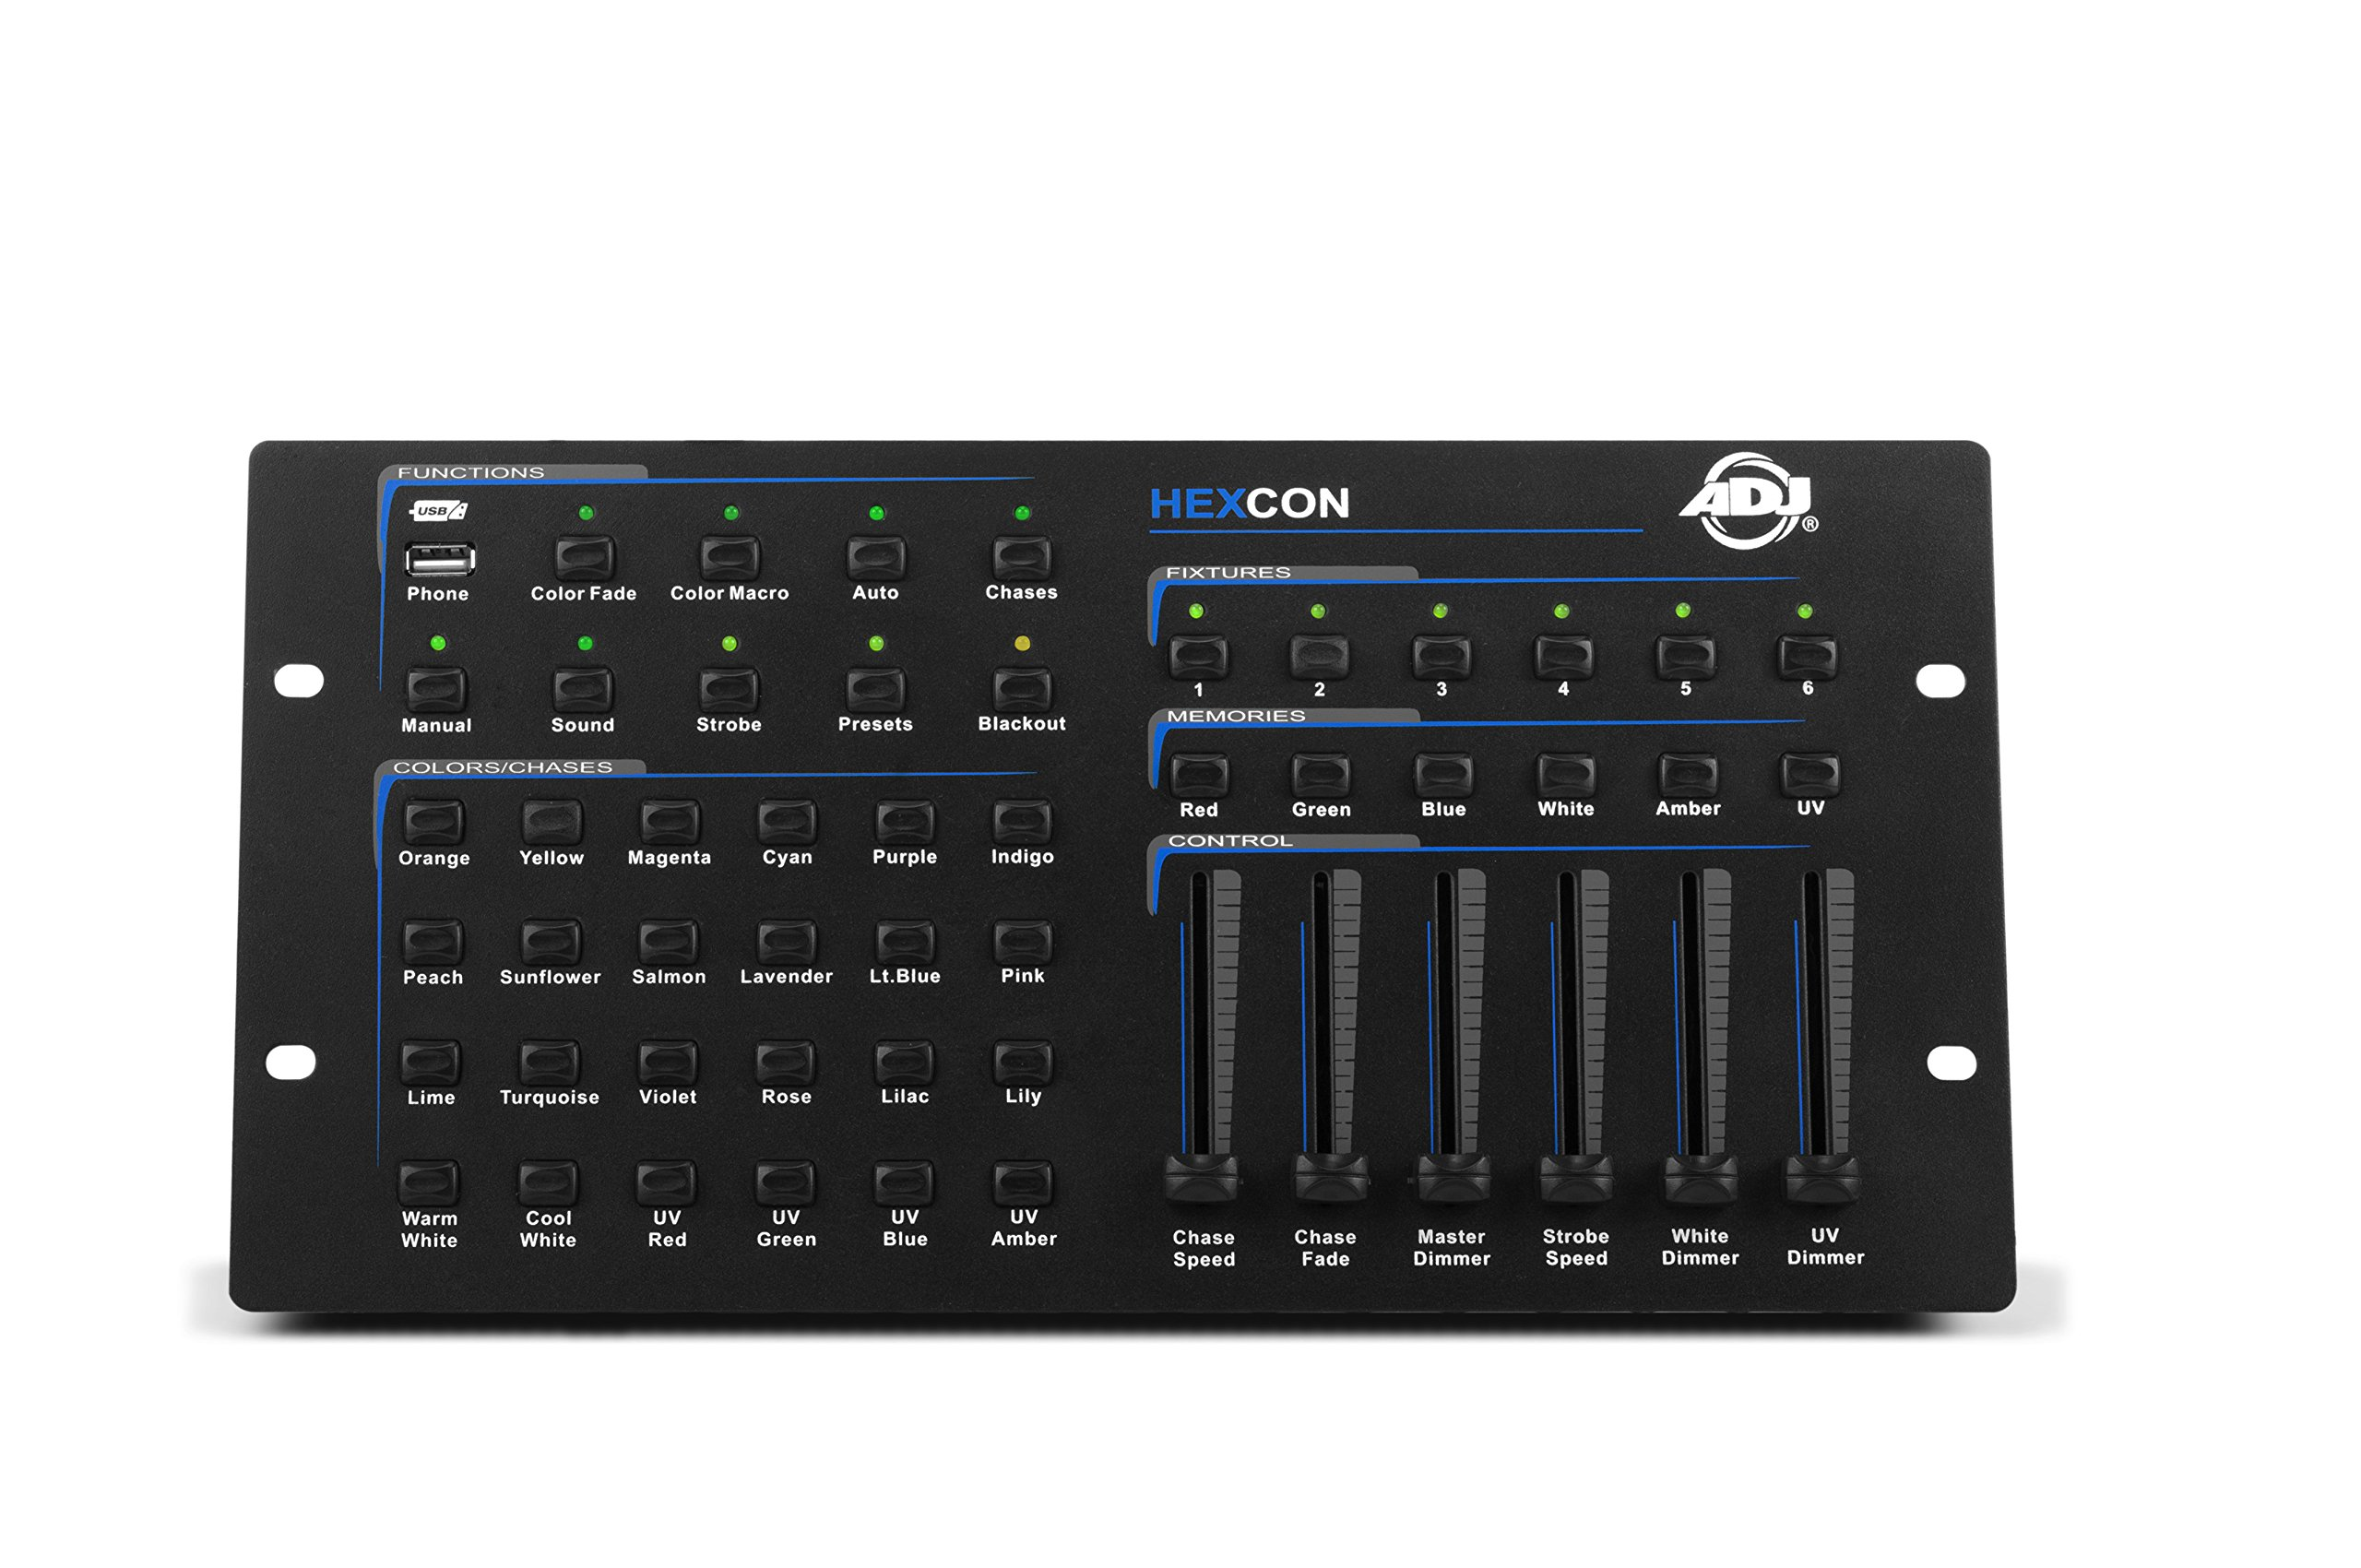 ADJ Products HEXCON HEX SERIE DMX controller, , 6 CHNL by ADJ Products